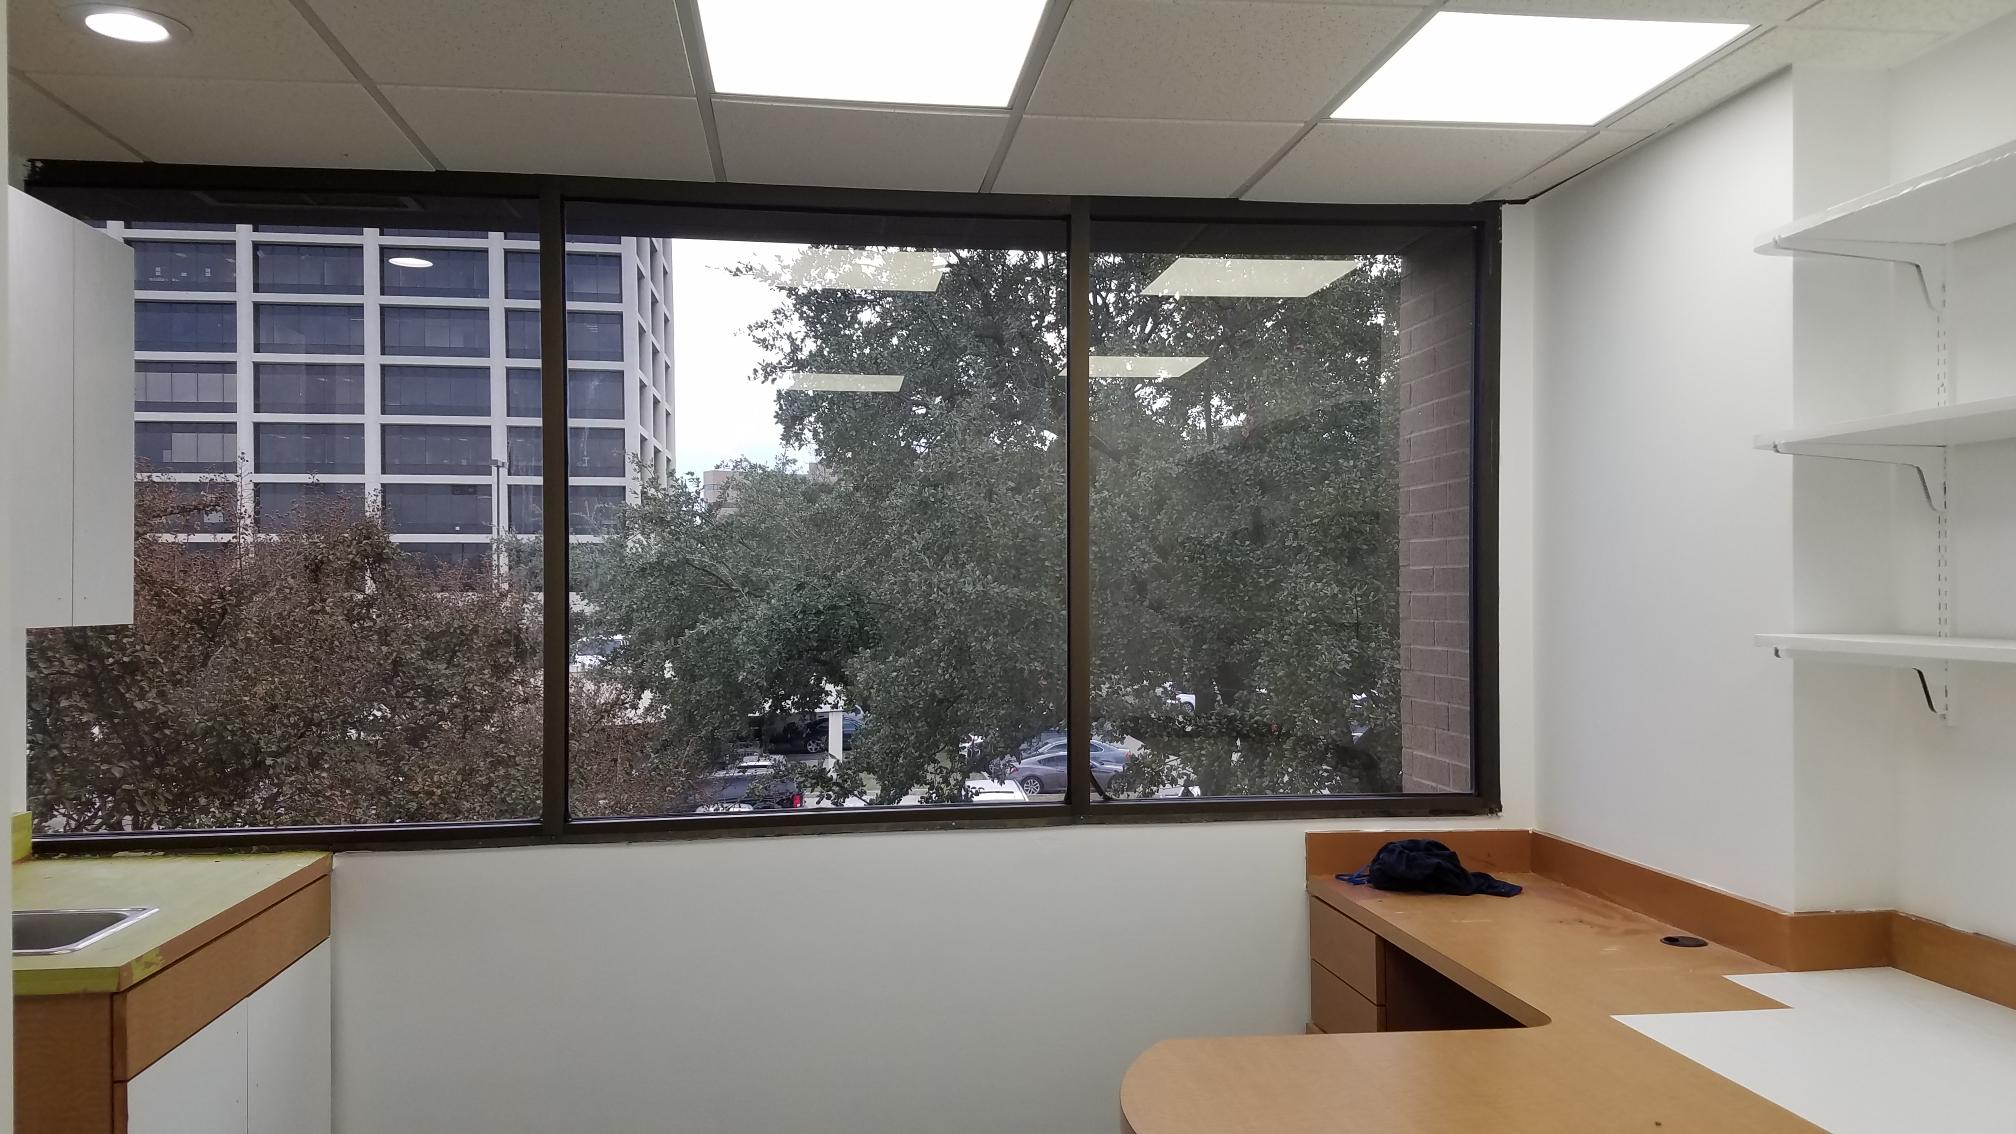 Medical Office Suite in Dallas - Suite 225A - Image 18 of 22